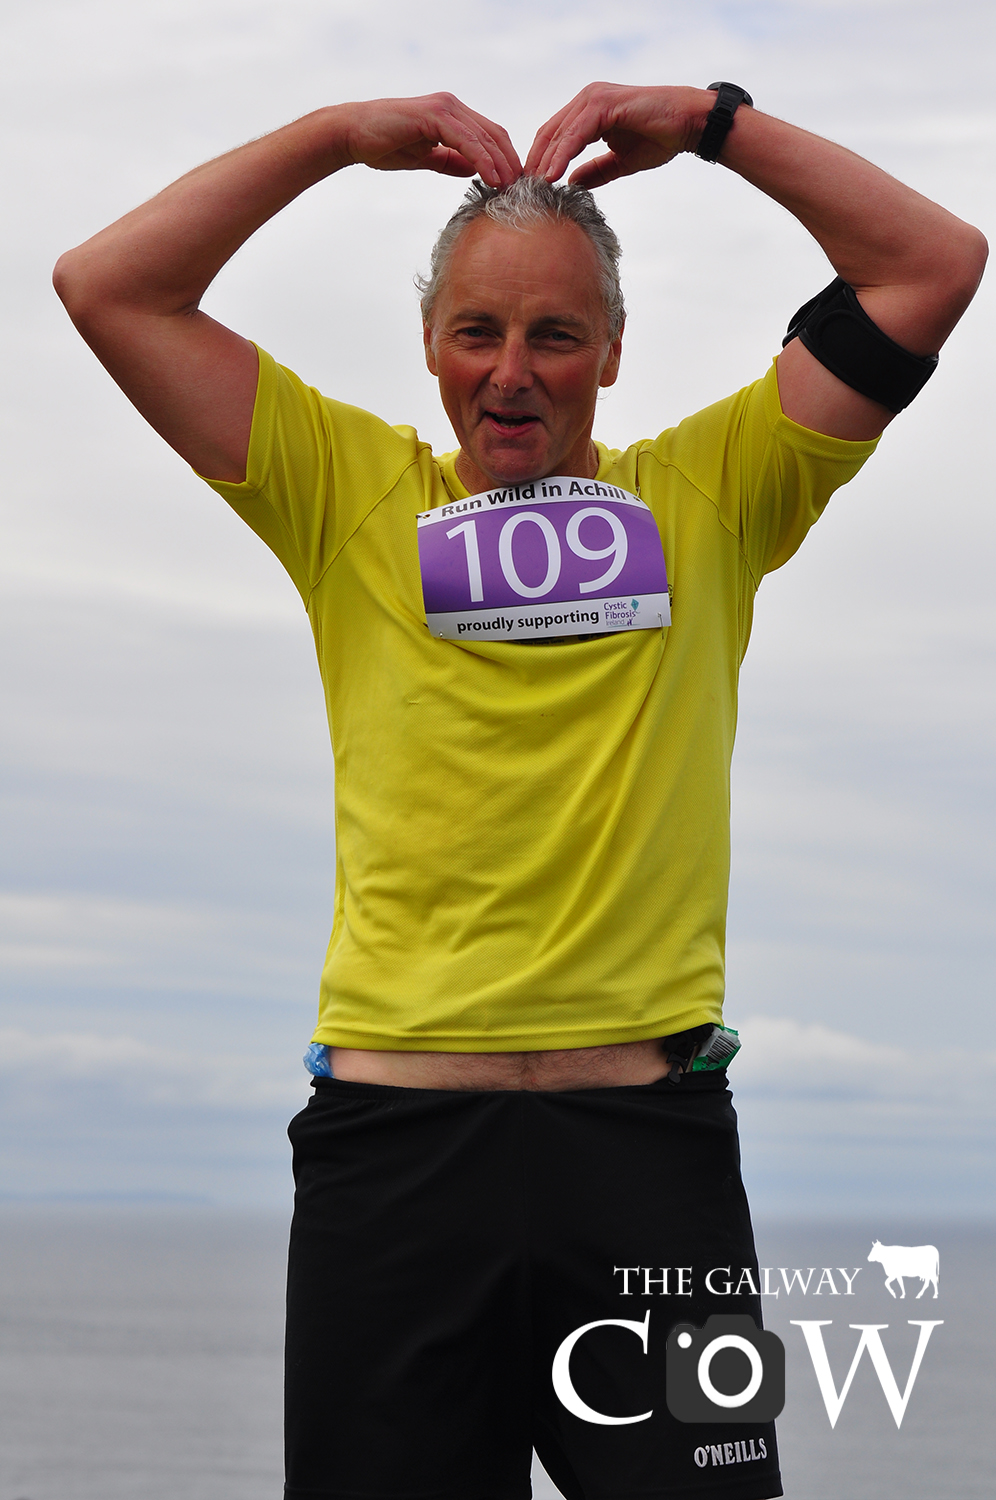 Achill Ultra Back 2 Back 2016 Photos.JPG